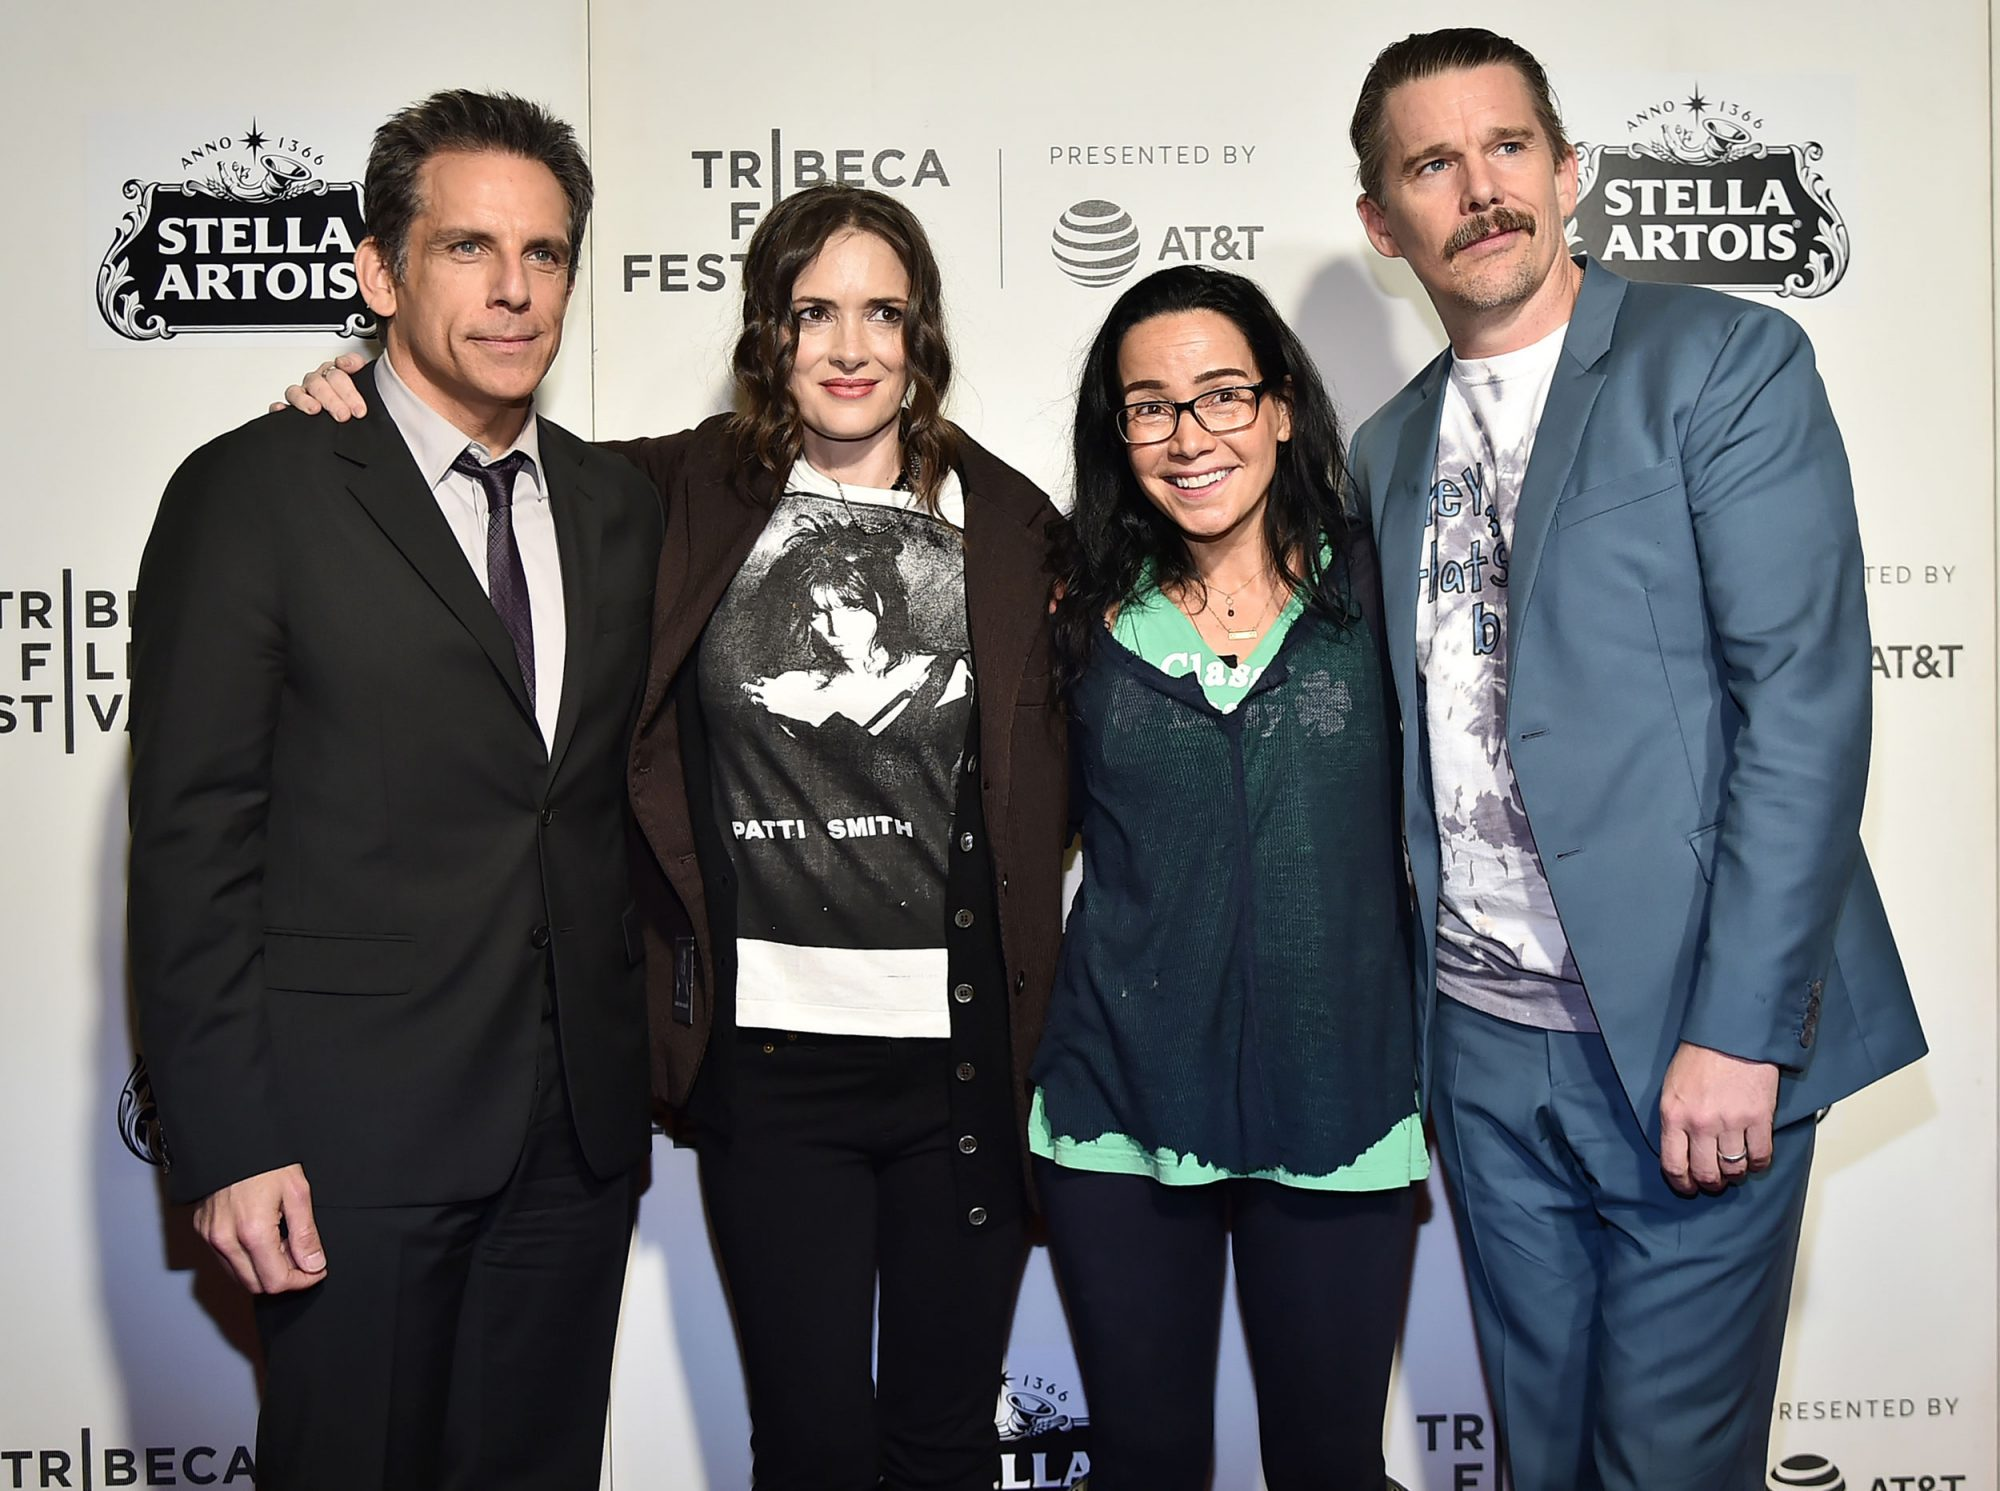 Ben Stiller, Winona Ryder, Janeane Garofalo and Ethan Hawke reunited at the 25th-anniversary screening of Reality Bites at the Tribeca Film Festival.